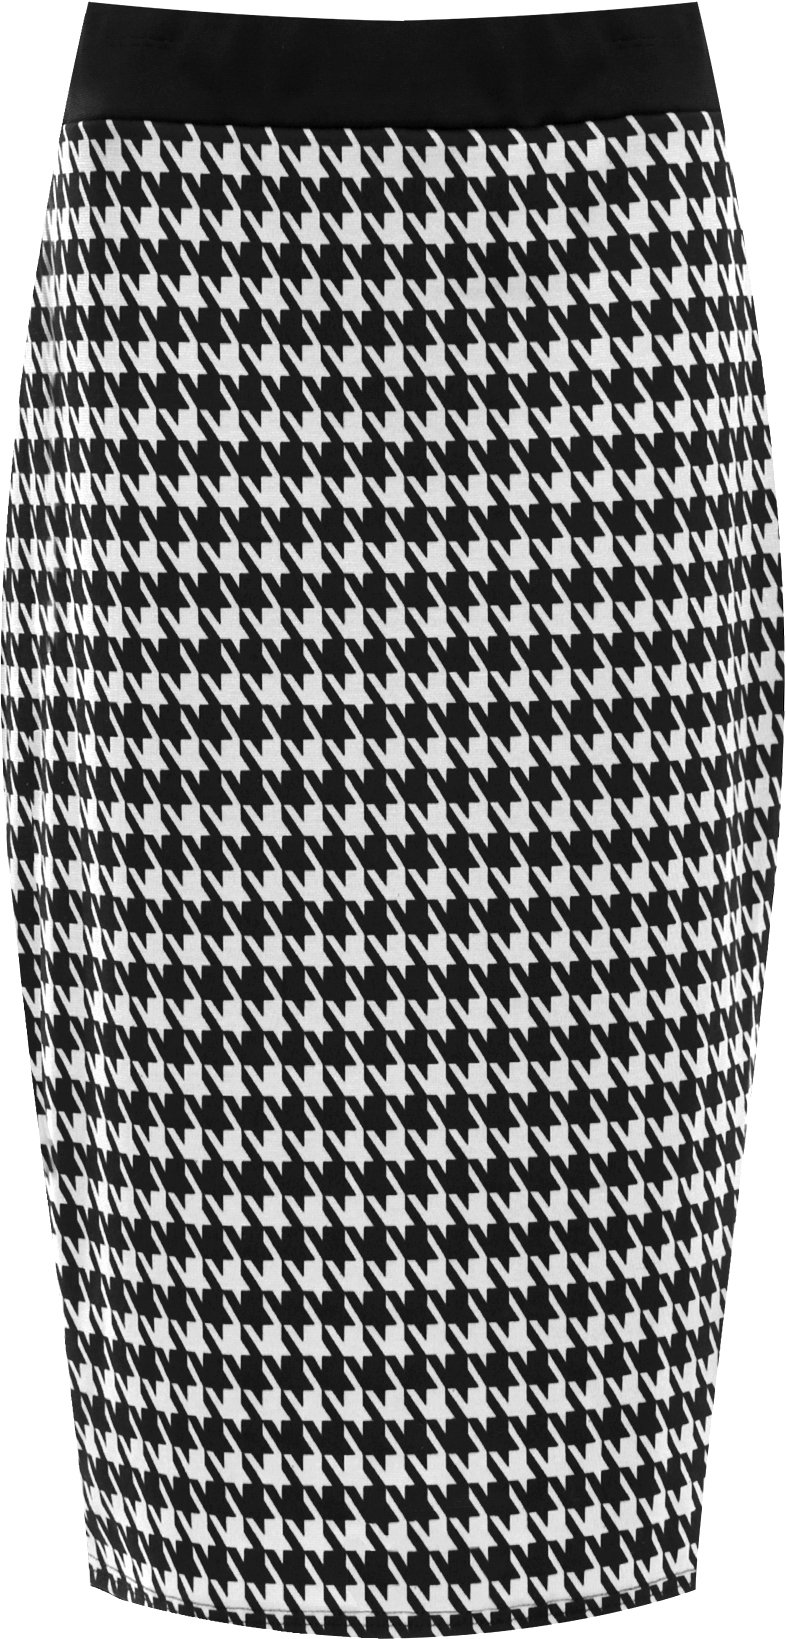 WearAll Women's Dogtooth Check Back Slit Pencil Ladies Stretch Skirt - Black - US 12-14 (UK 16-18)